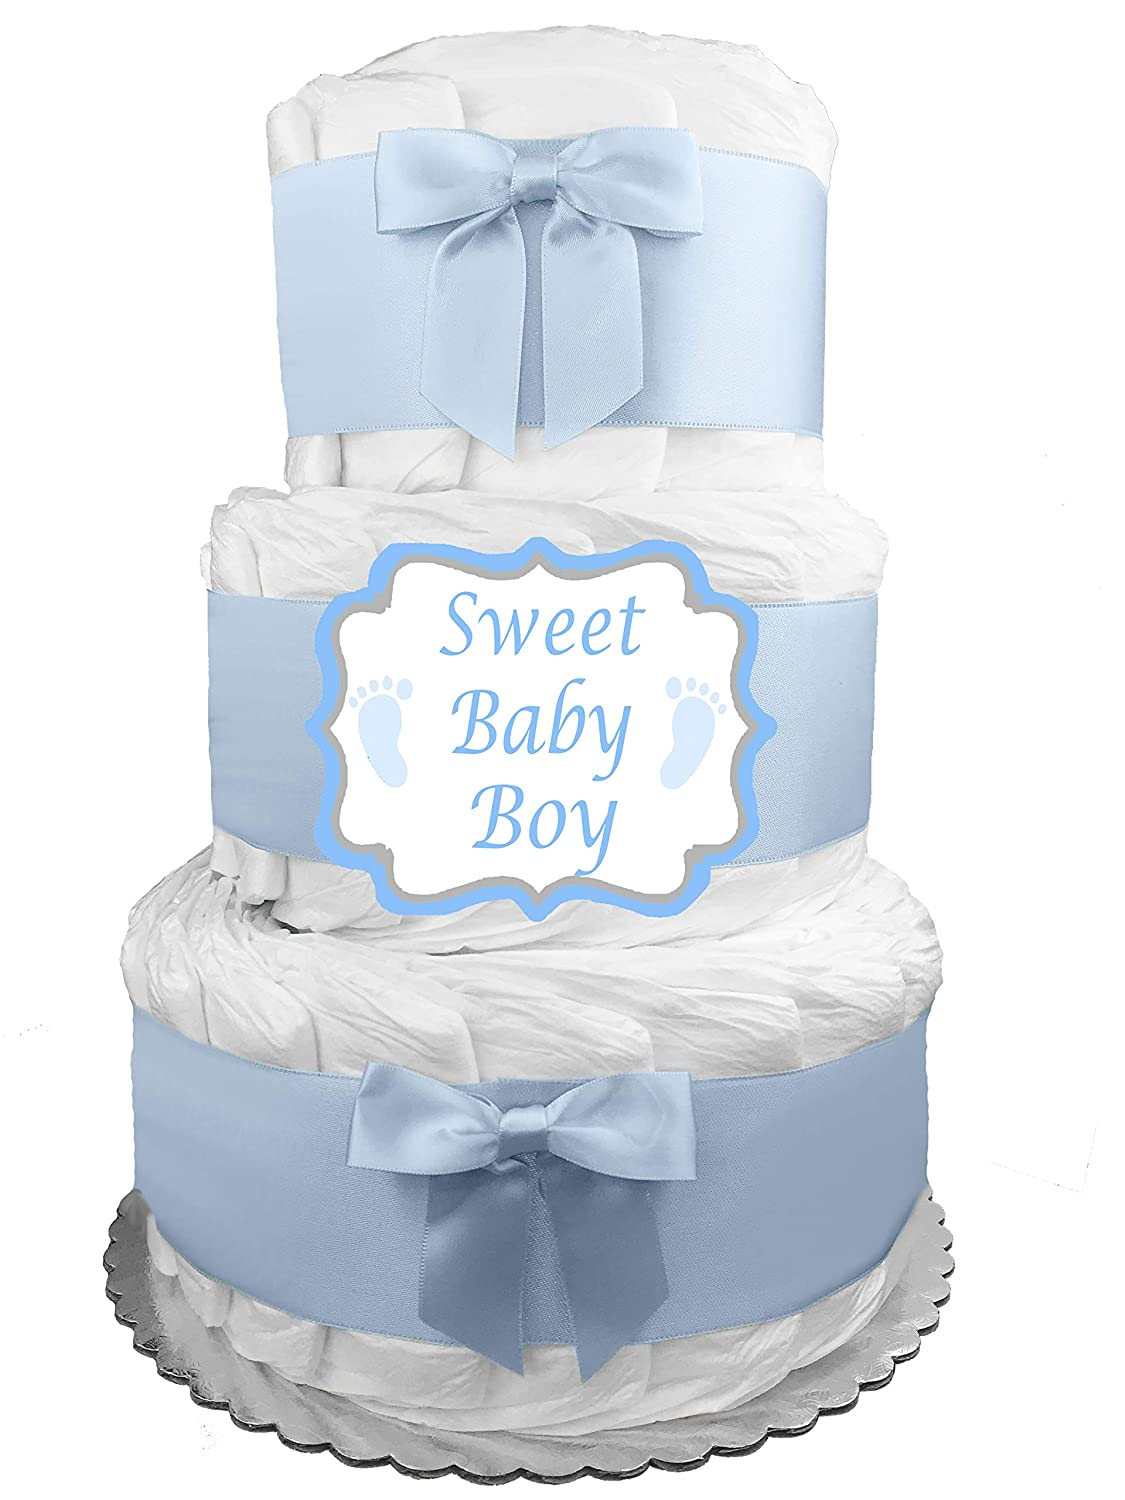 Elephant 3-Tier Diaper Cake – Baby Shower Gift – Blue and Gray